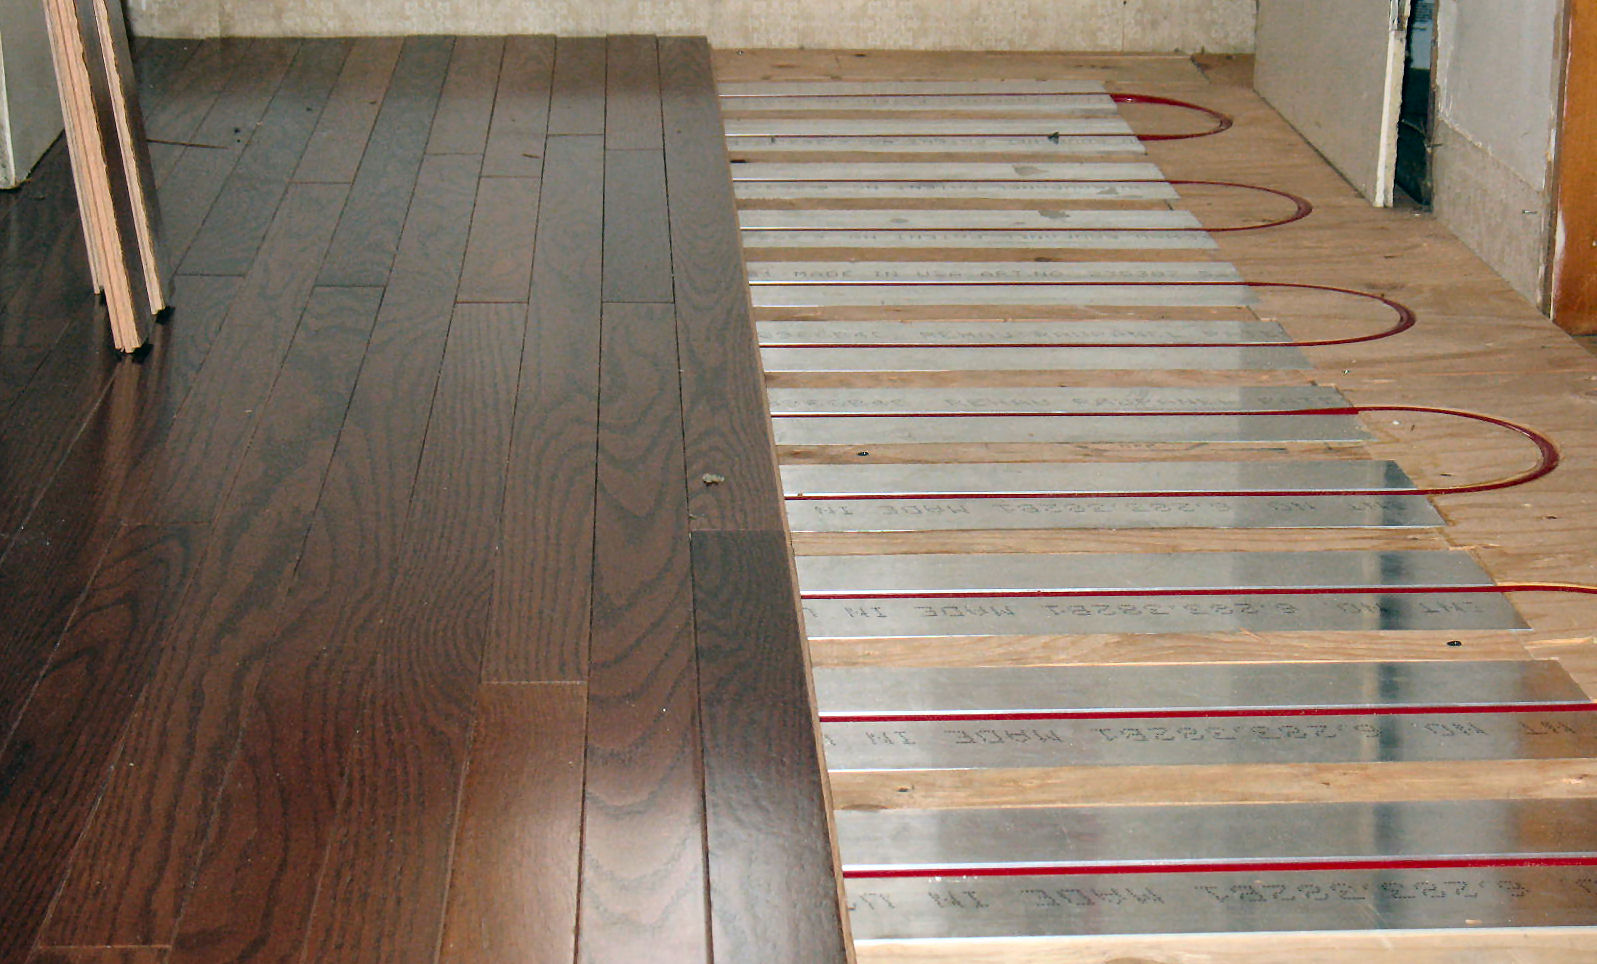 Energy Efficient Heating Radiant Floor Installation From Tacoma To - Cost of installing underfloor heating